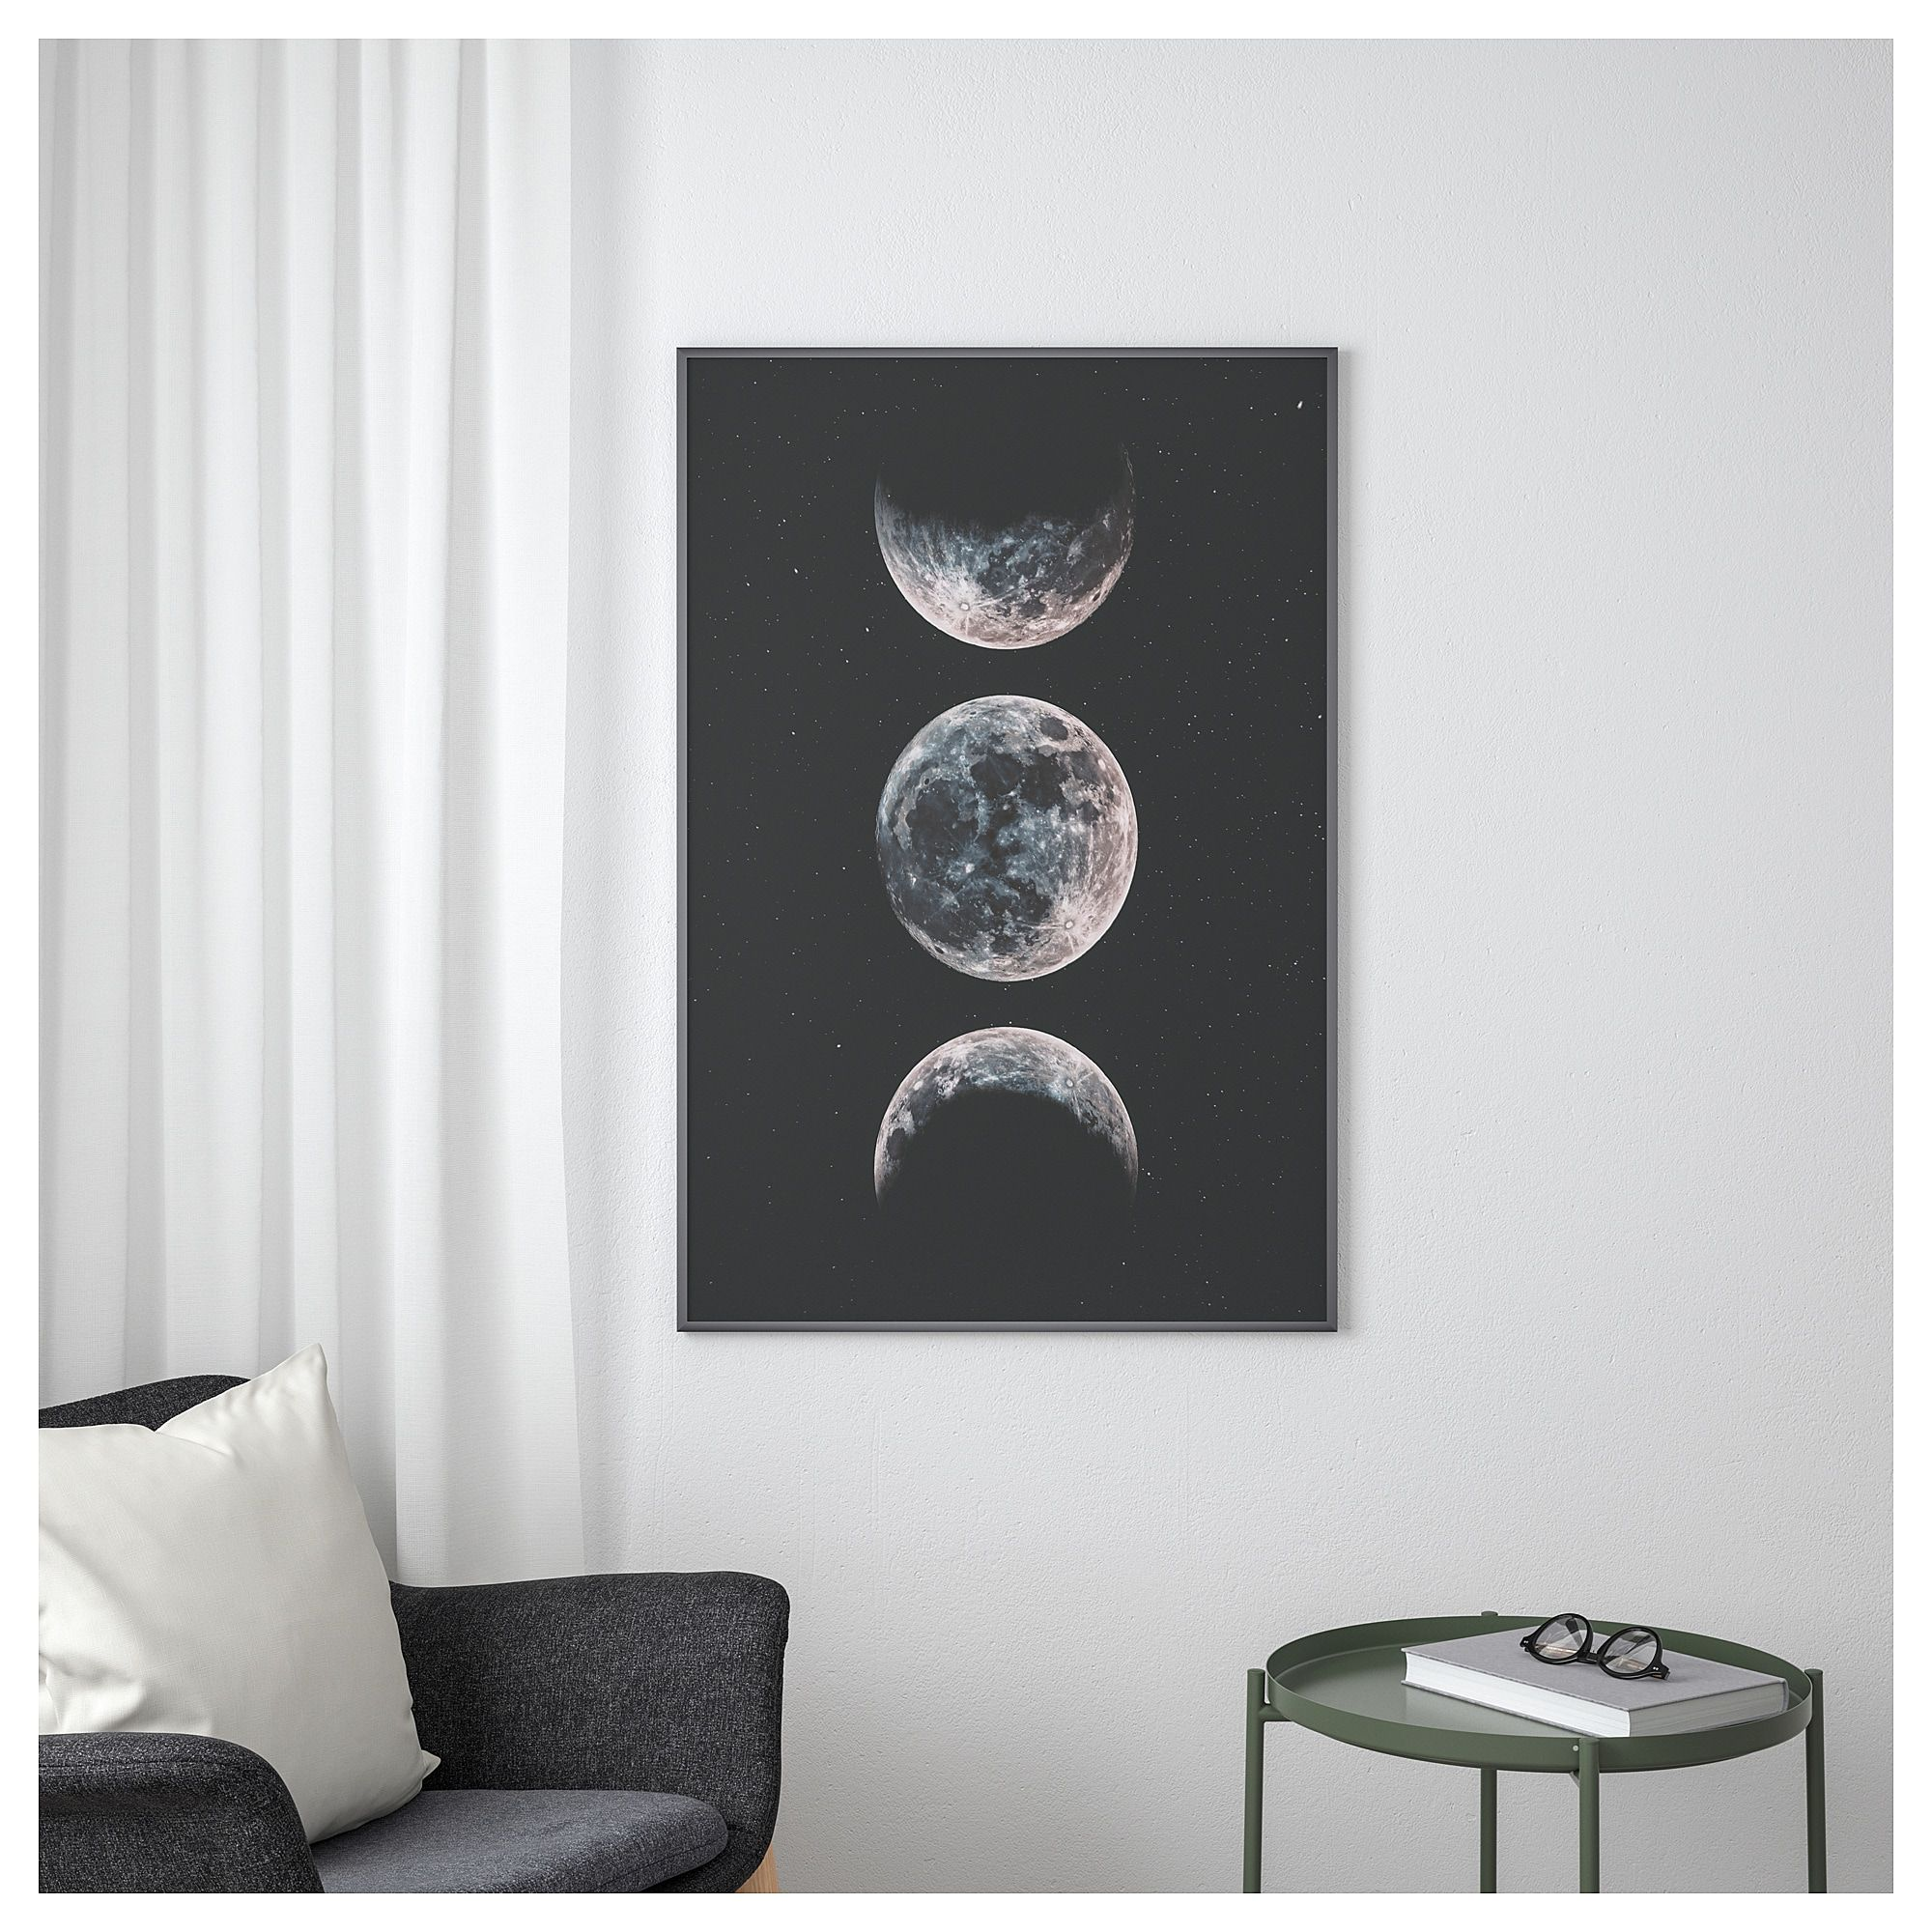 Ikea Poster Ikea Bild Poster Moon Products In 2019 Ikea Bedroom Posters